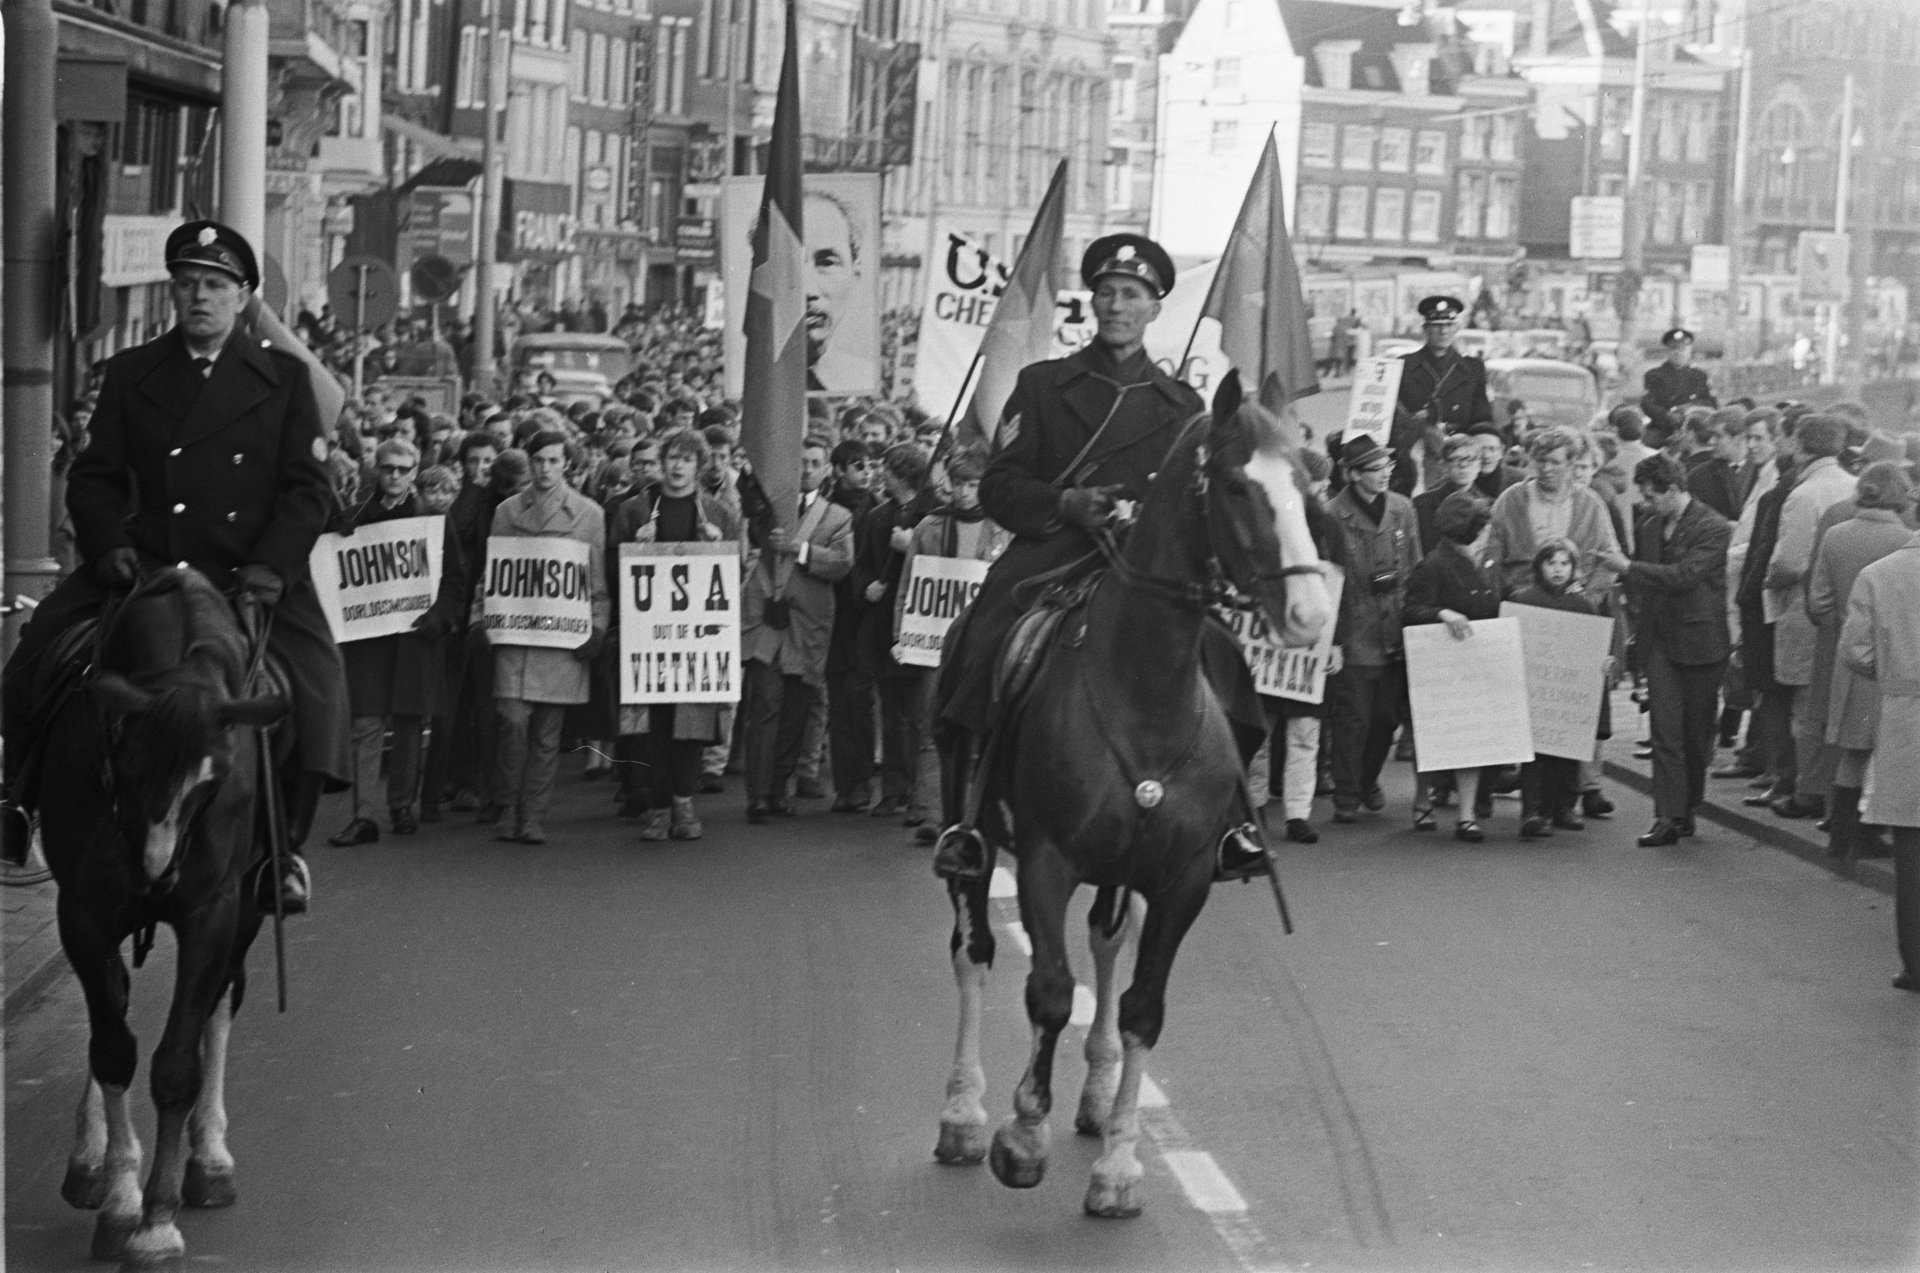 Anti-American demonstration in Amsterdam, 16 March 1968. Photo by Nijs, Jac. de / Anefo | Nationaal Archief